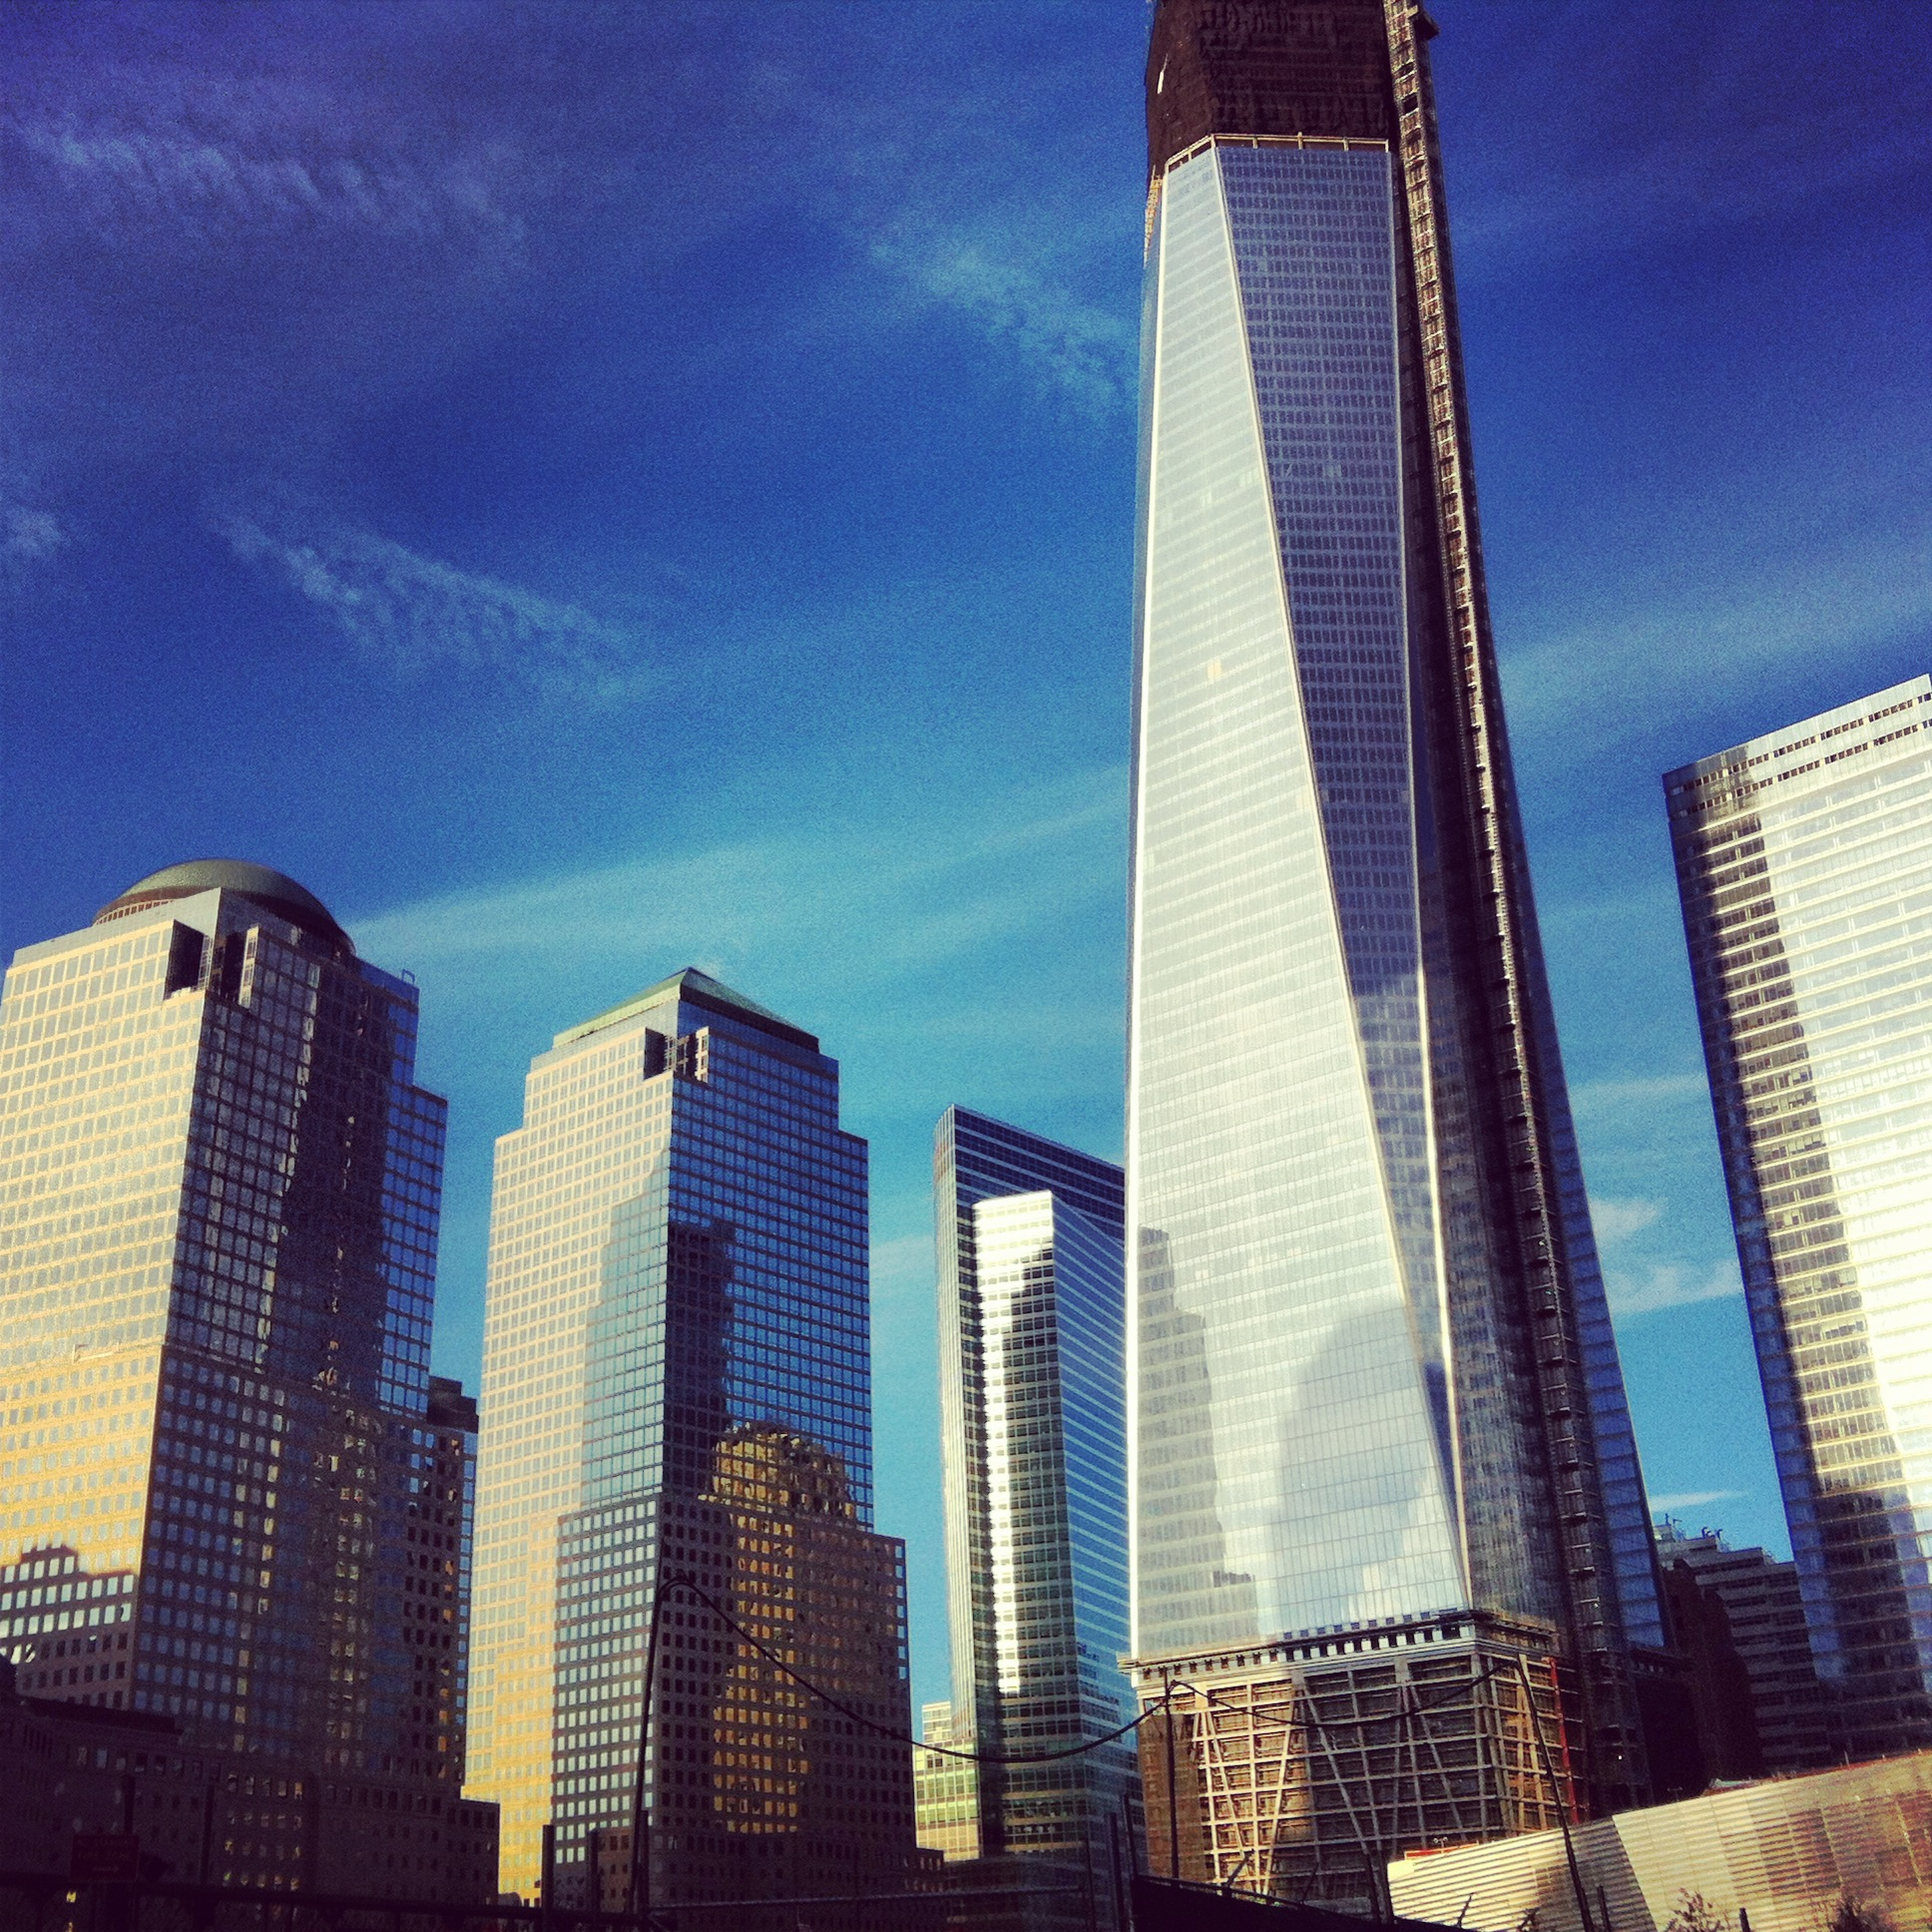 The new towers at the WTC site